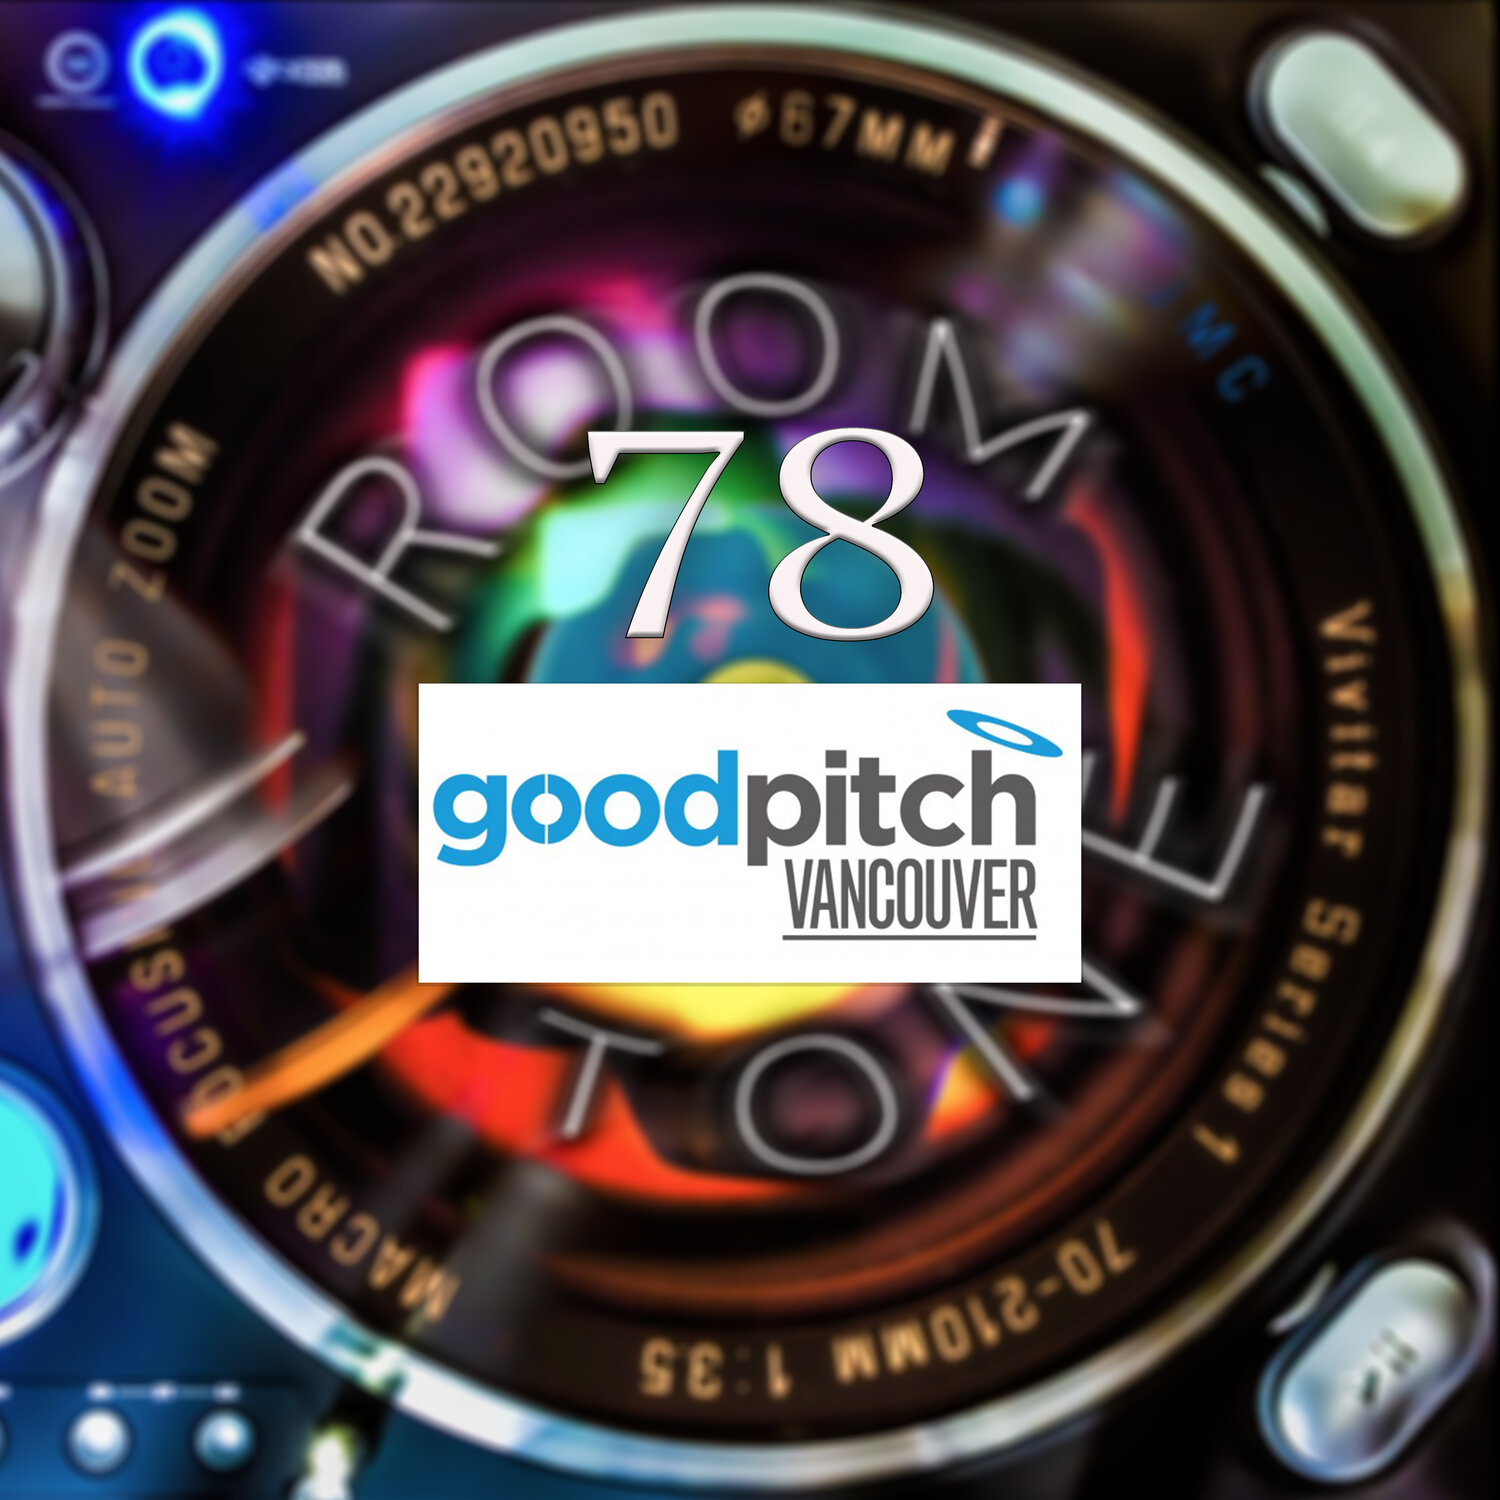 ROOM TONE Take 78 (Andrew Williamson & Anthony Truong Swan / Good Pitch Vancouver)